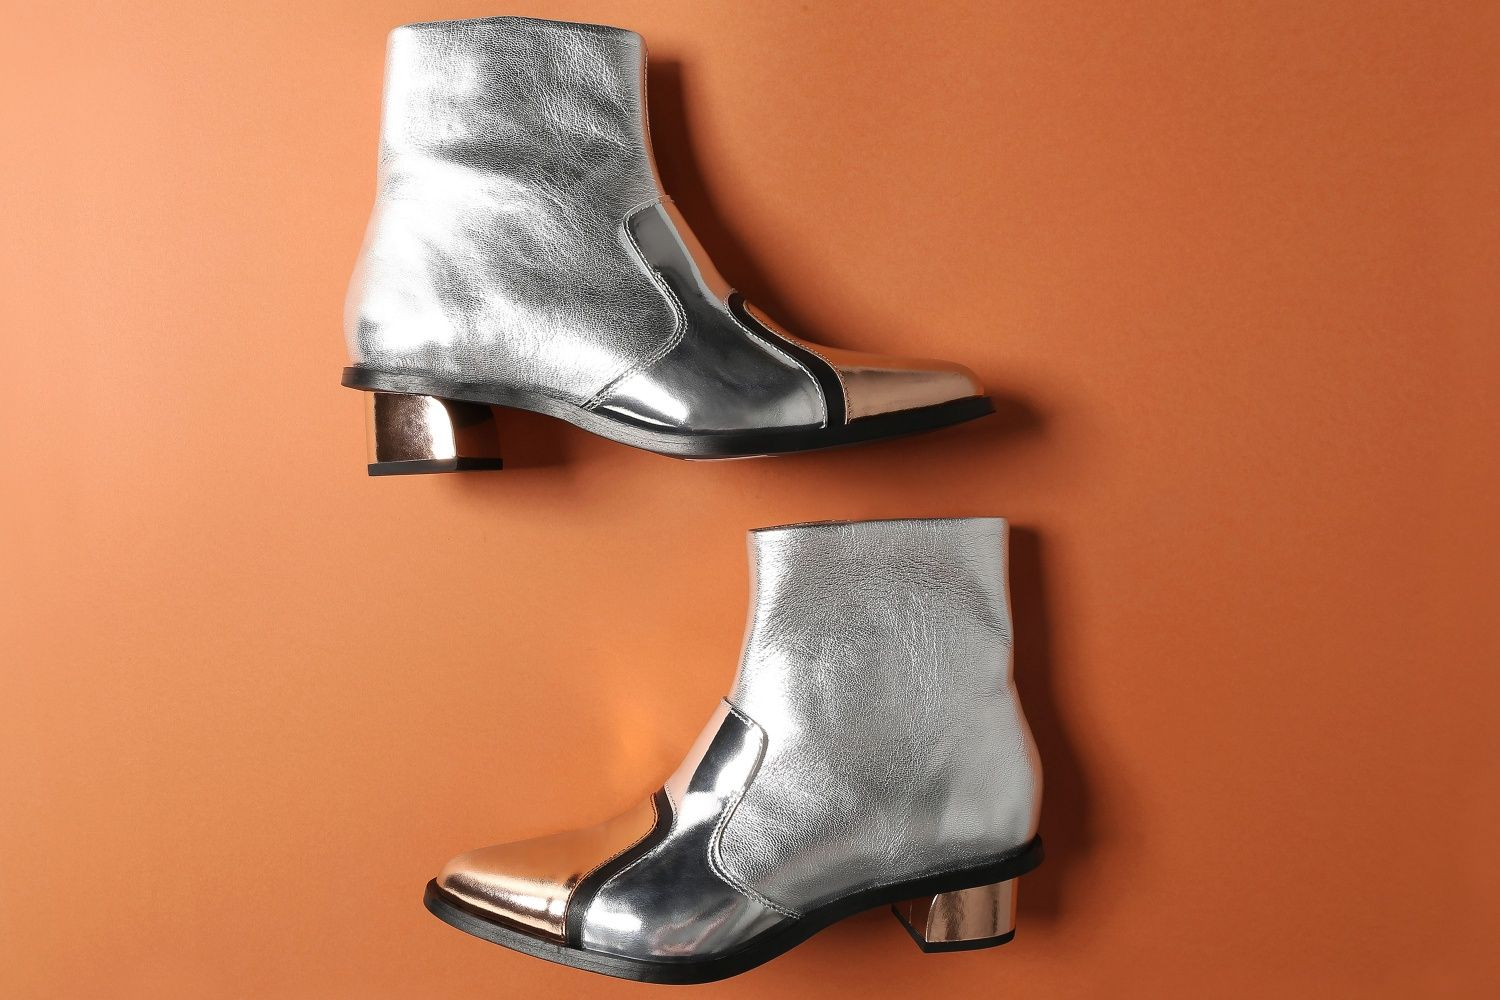 83393ffc2a8 Mid Heel Ankle Boots EUREKA CONCEPT COLLECTION - Multicolor